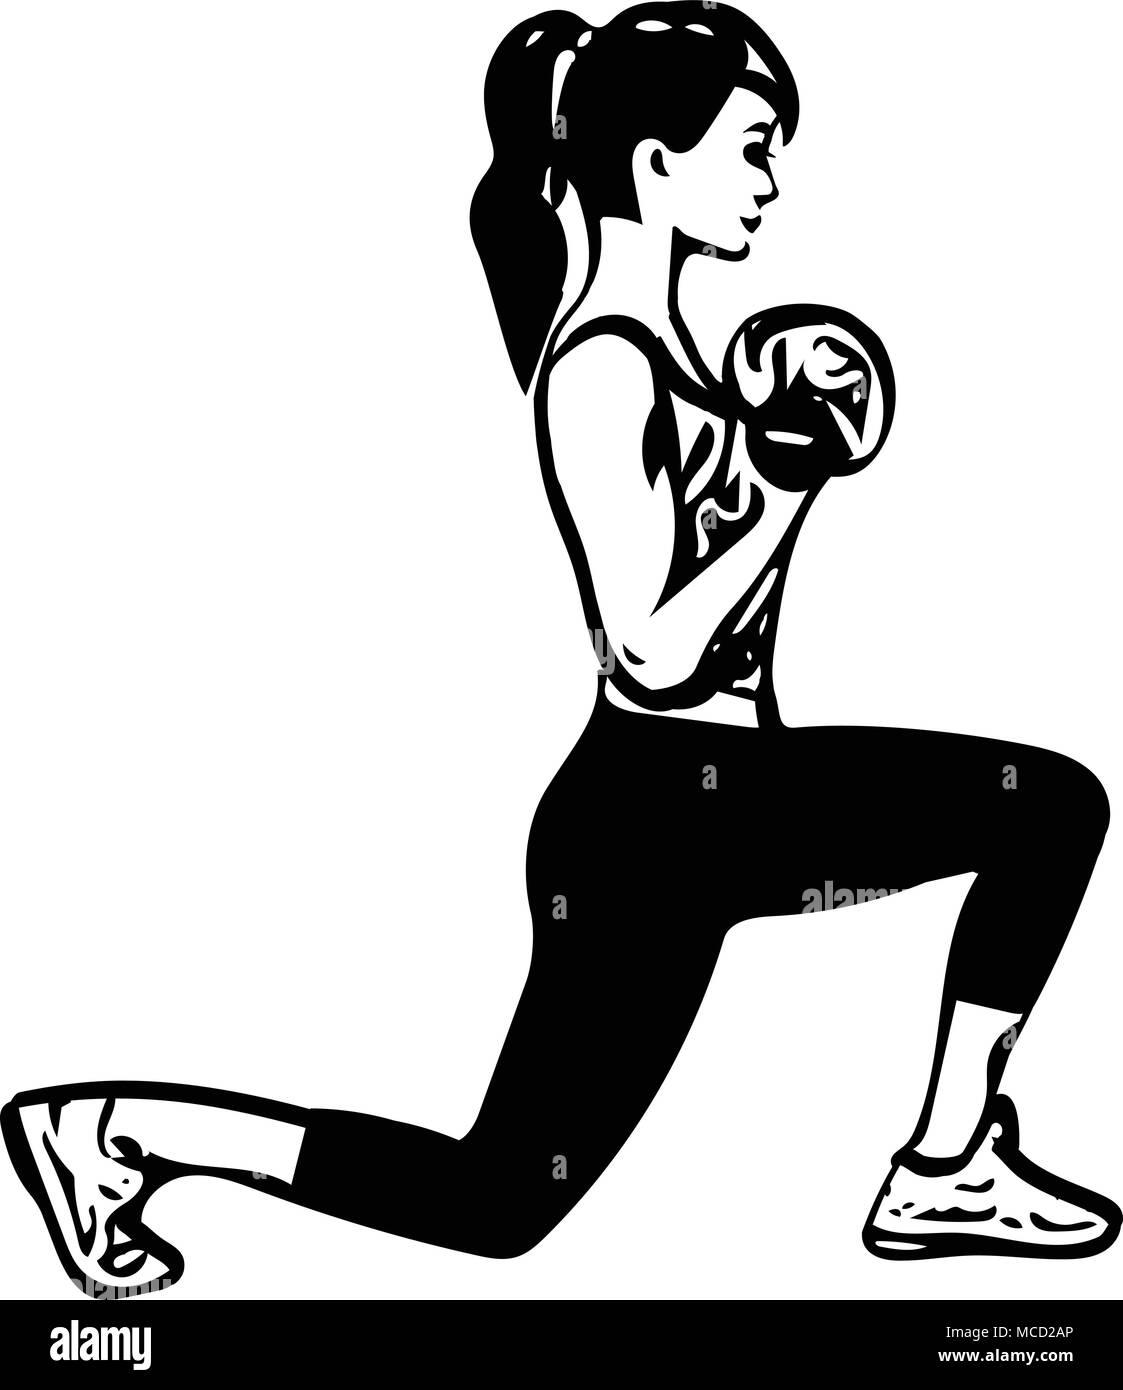 Women Exercising Gym Fitness Silhouette Health Girl Slim Black And White Stock Photos Images Alamy Ny #fitness #jobs female membership sales rep (bayridge): https www alamy com fit young woman in sportswear vector illustration image179766798 html